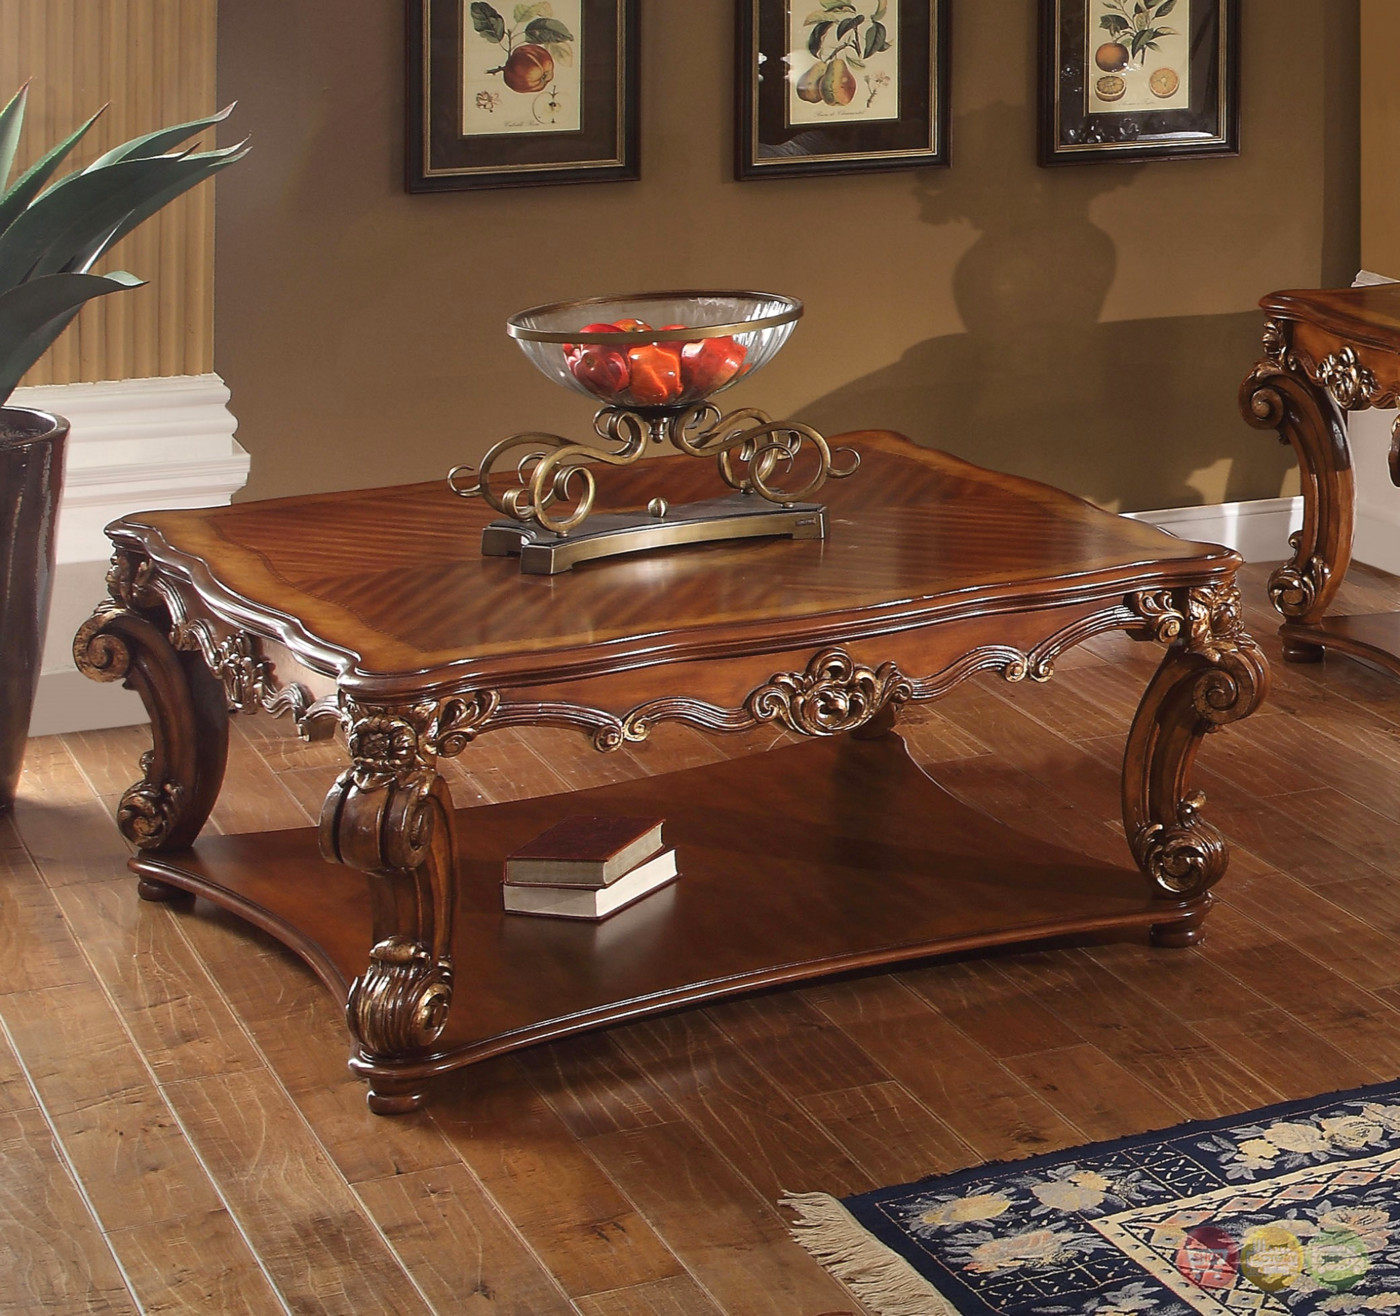 Vendome Traditional Ornate Coffee Table With Wood Top In Cherry Finish